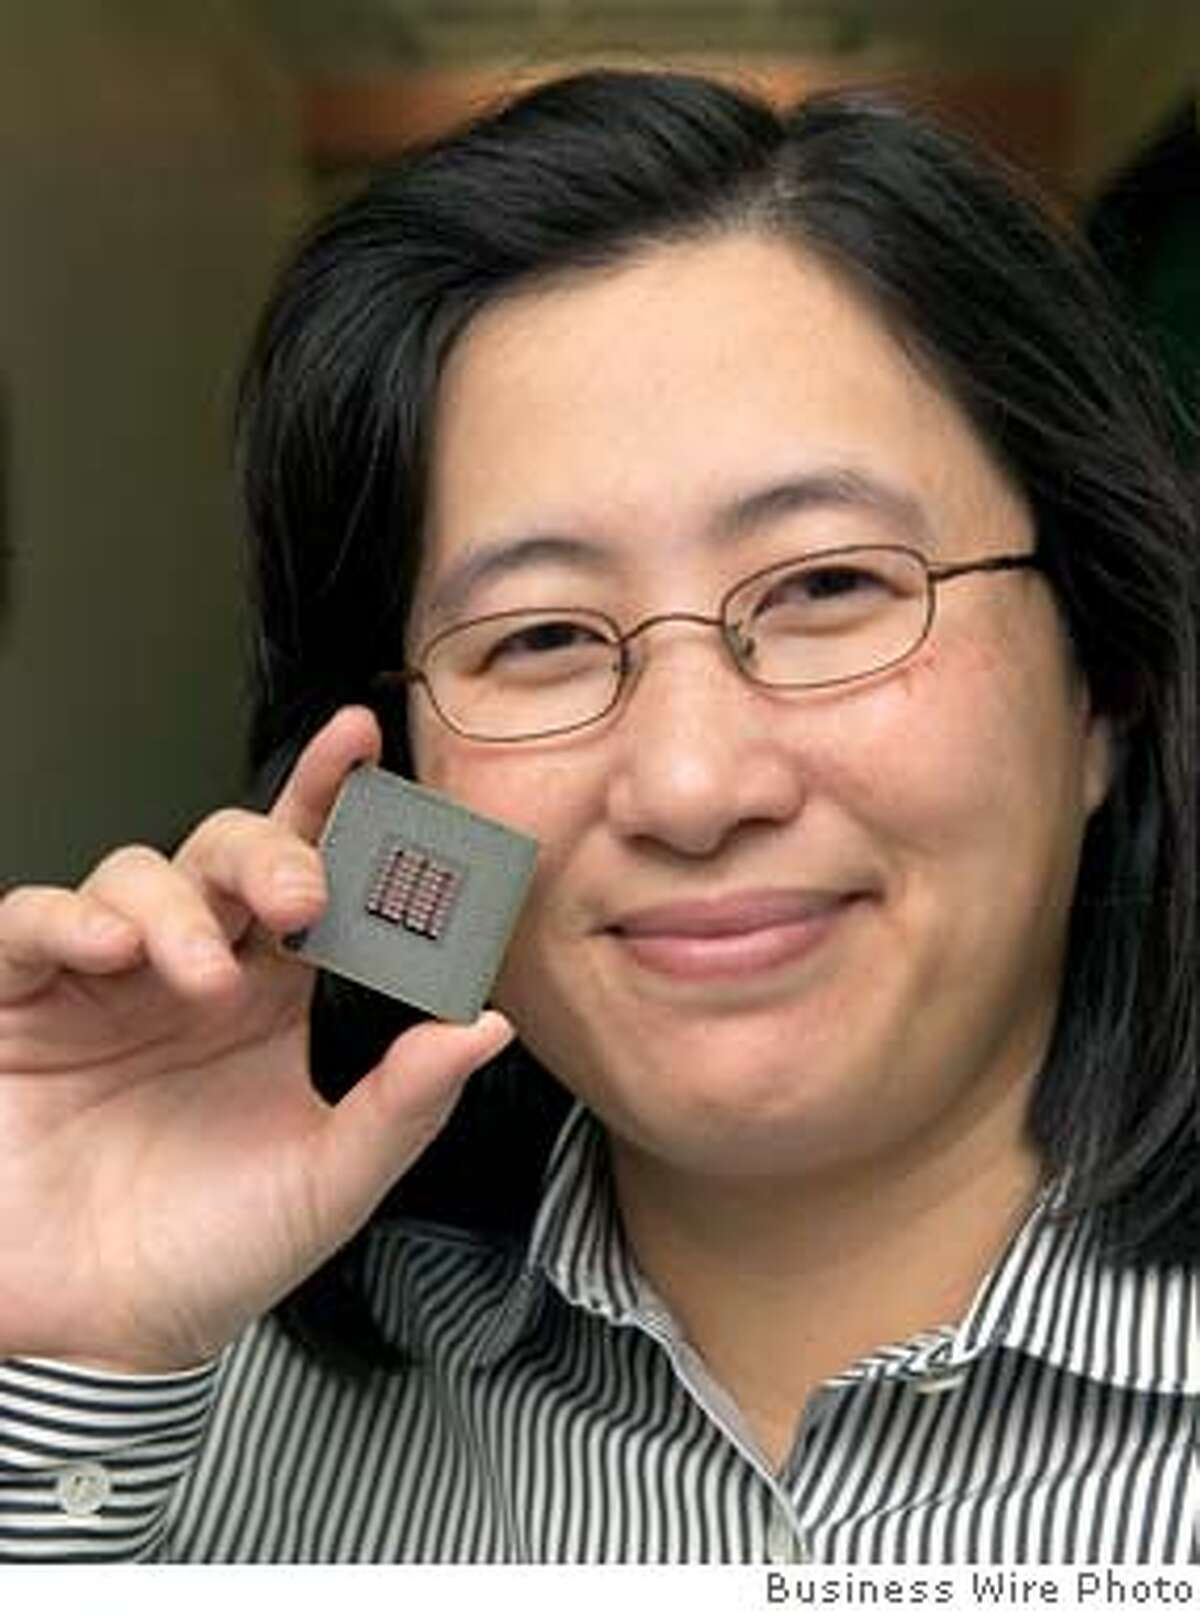 """IBM technologist Lisa Su holds the new Cell microprocessor, jointly developed by IBM, Sony and Toshiba. At the E3 conference in Los Angeles today Sony announced that Cell will power the new Sony Playstation 3 game console. Essentially a """"supercomputer on a chip"""" Cell provides vastly improved graphics and visualization capabilities, in many cases 10 times the performance of today's PC processors. (Photo: Business Wire)"""